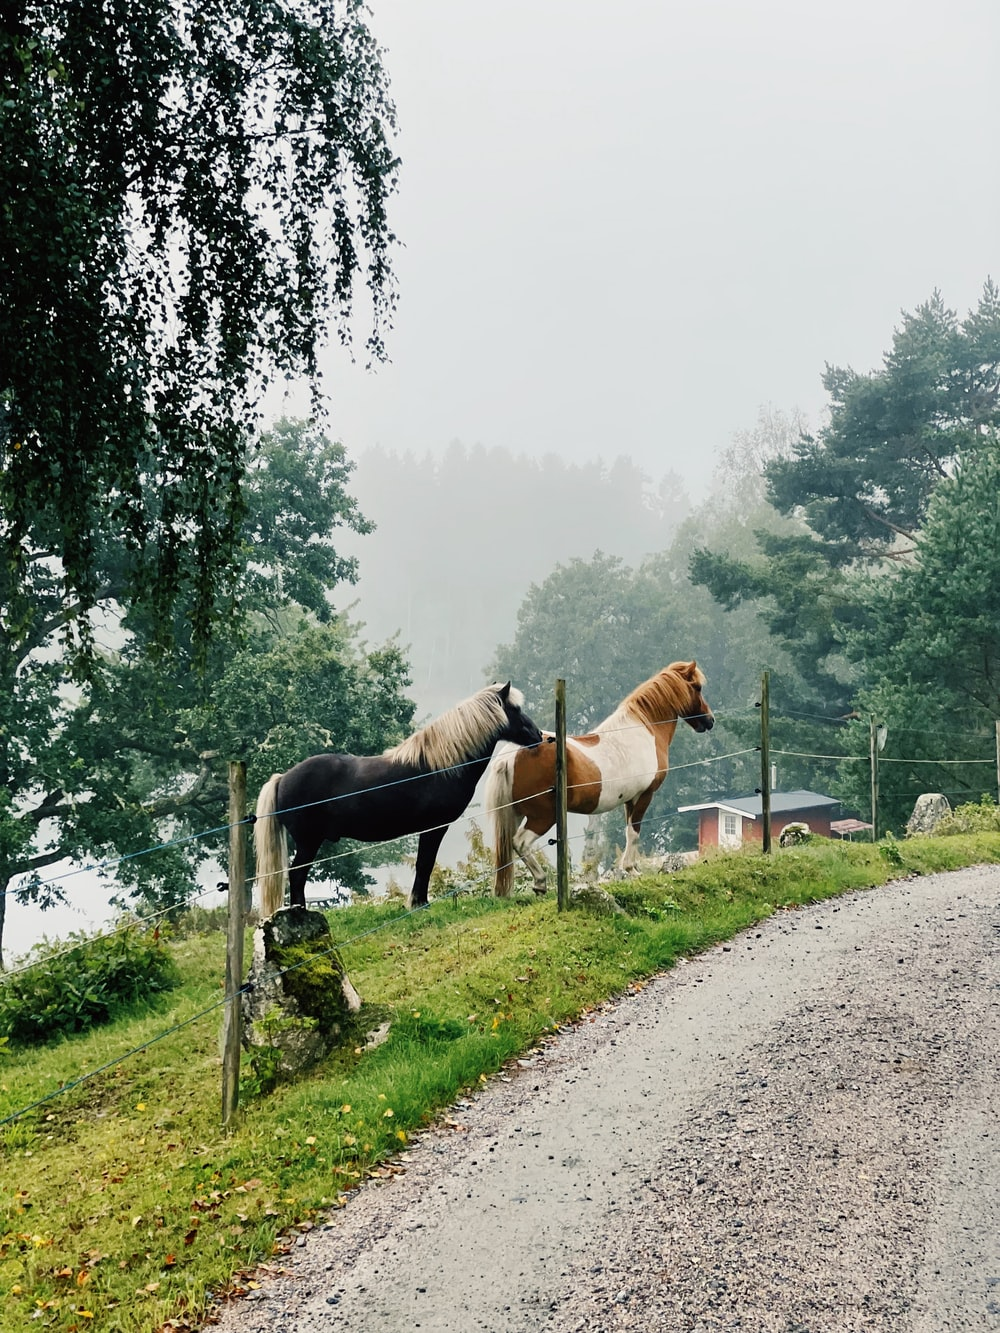 brown and white horse on dirt road during daytime